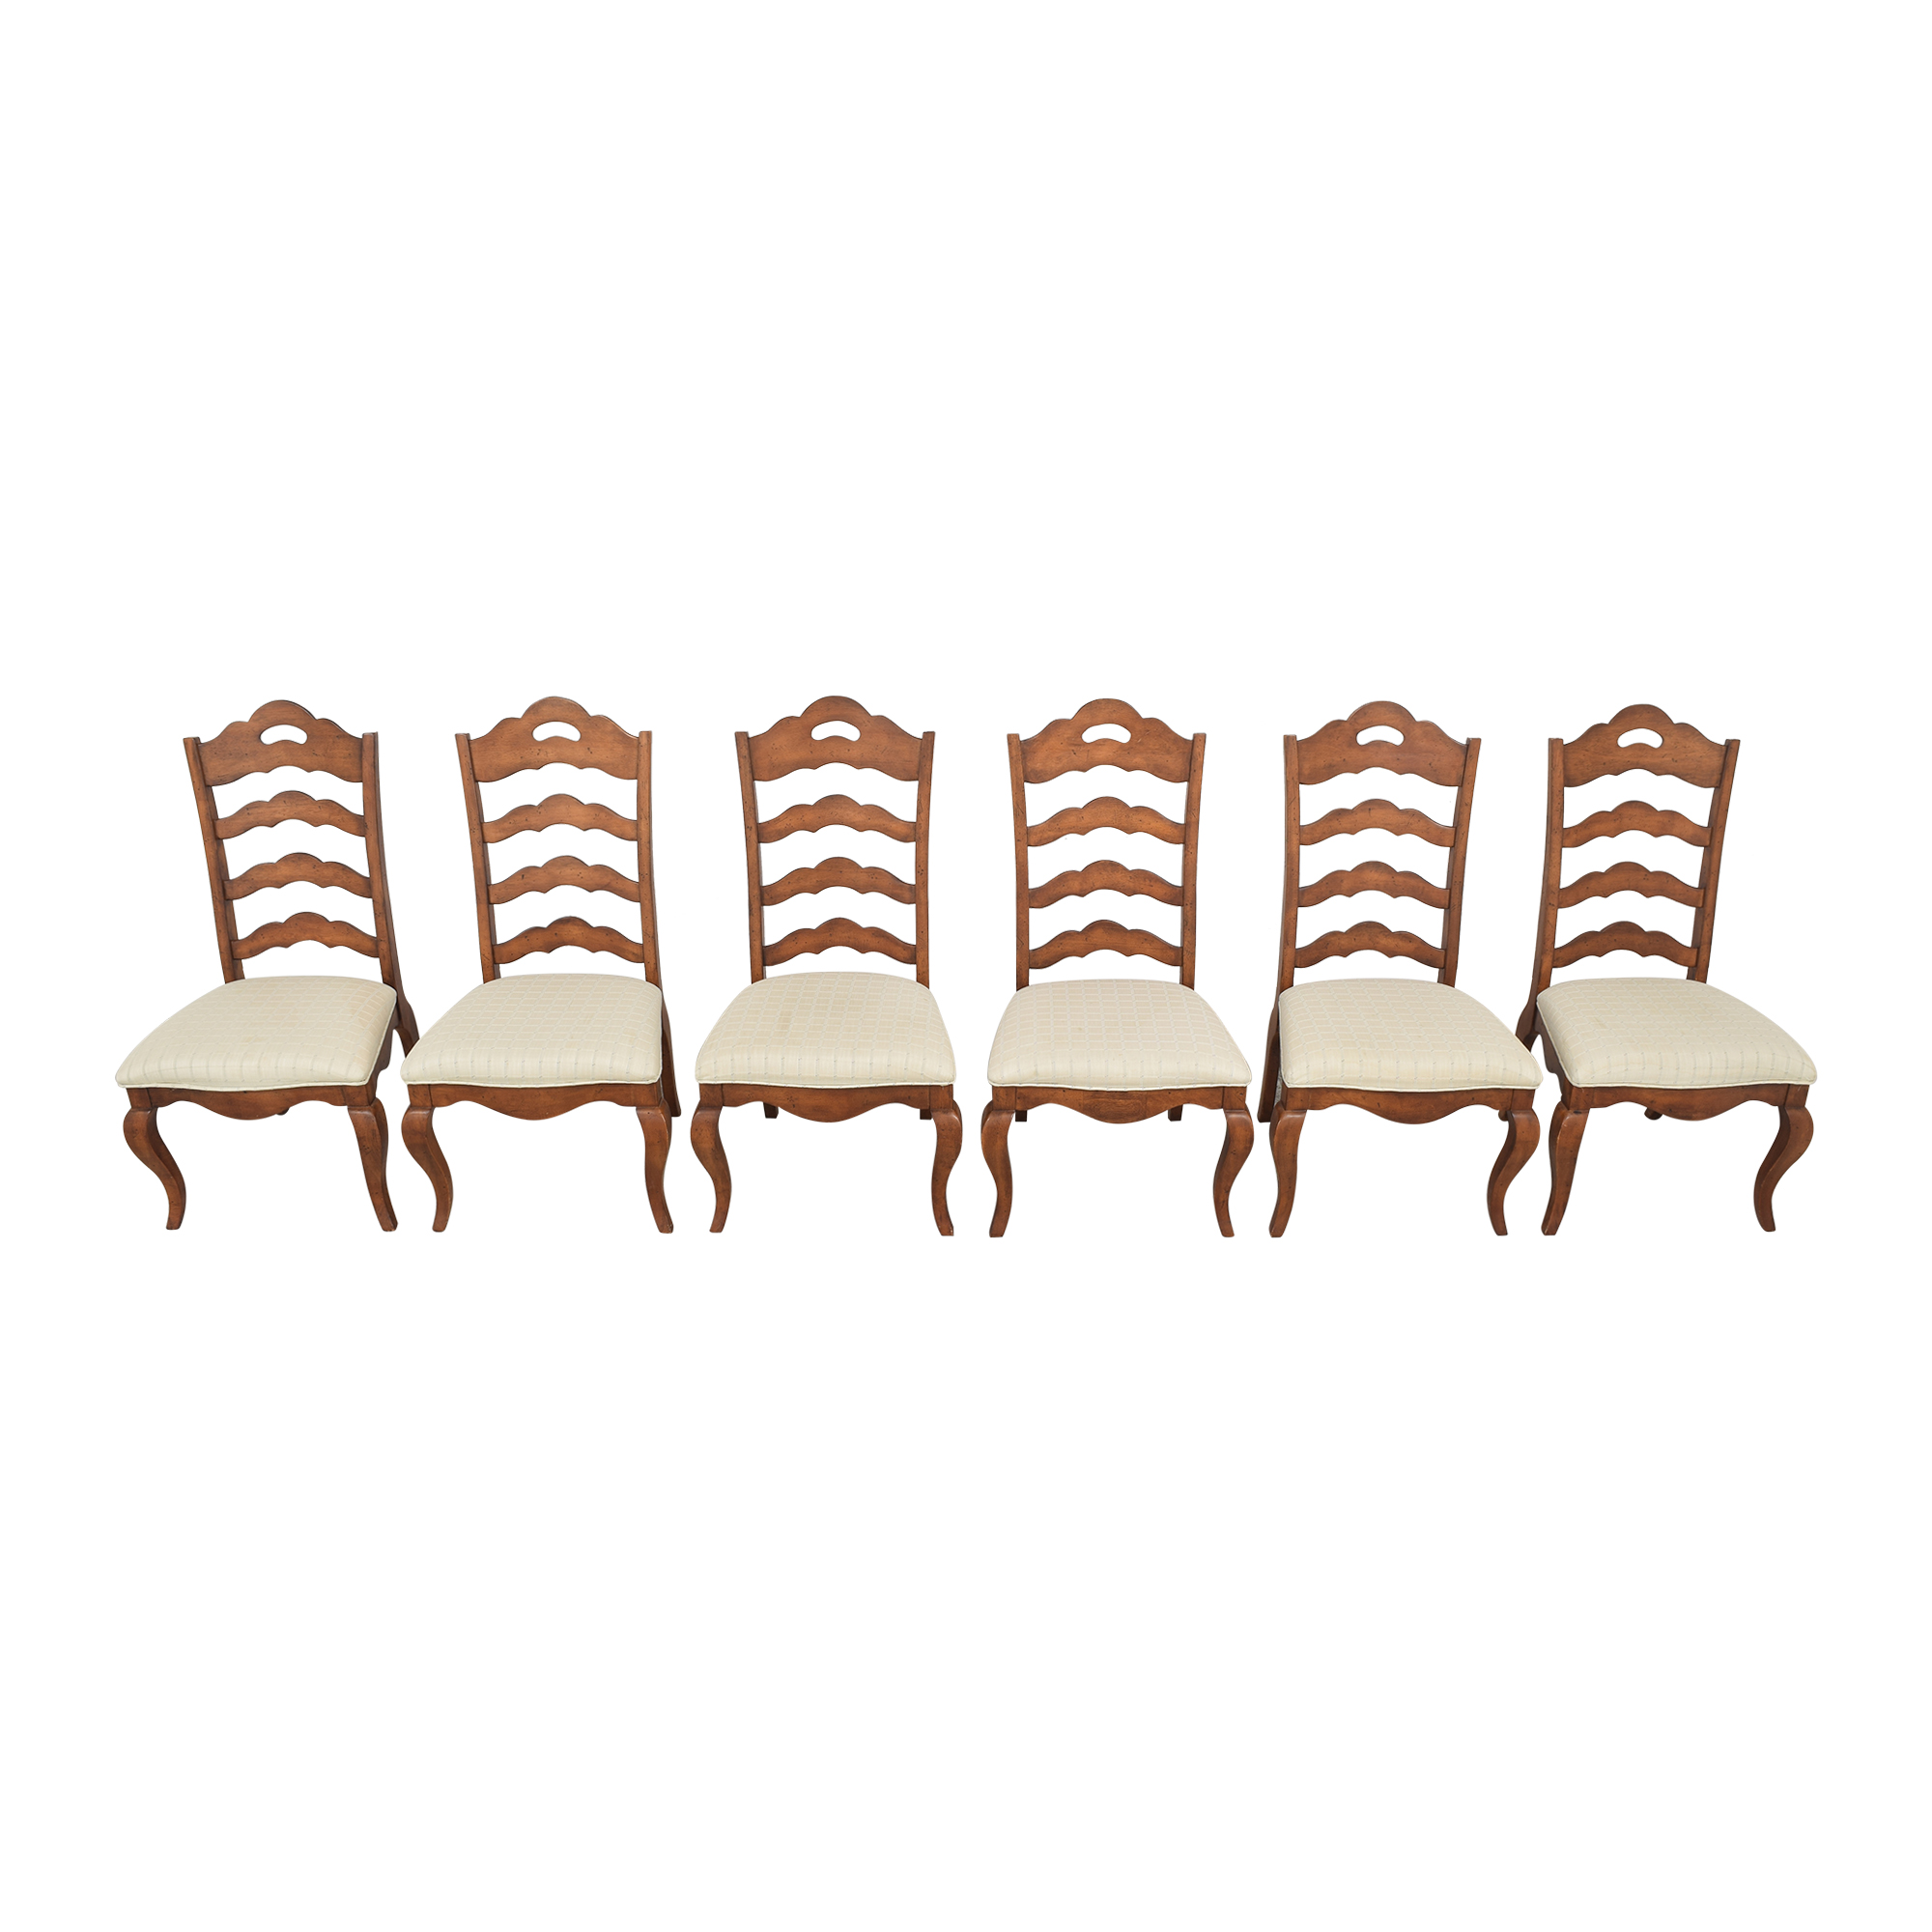 Universal Furniture Ladder Back Dining Chairs / Chairs